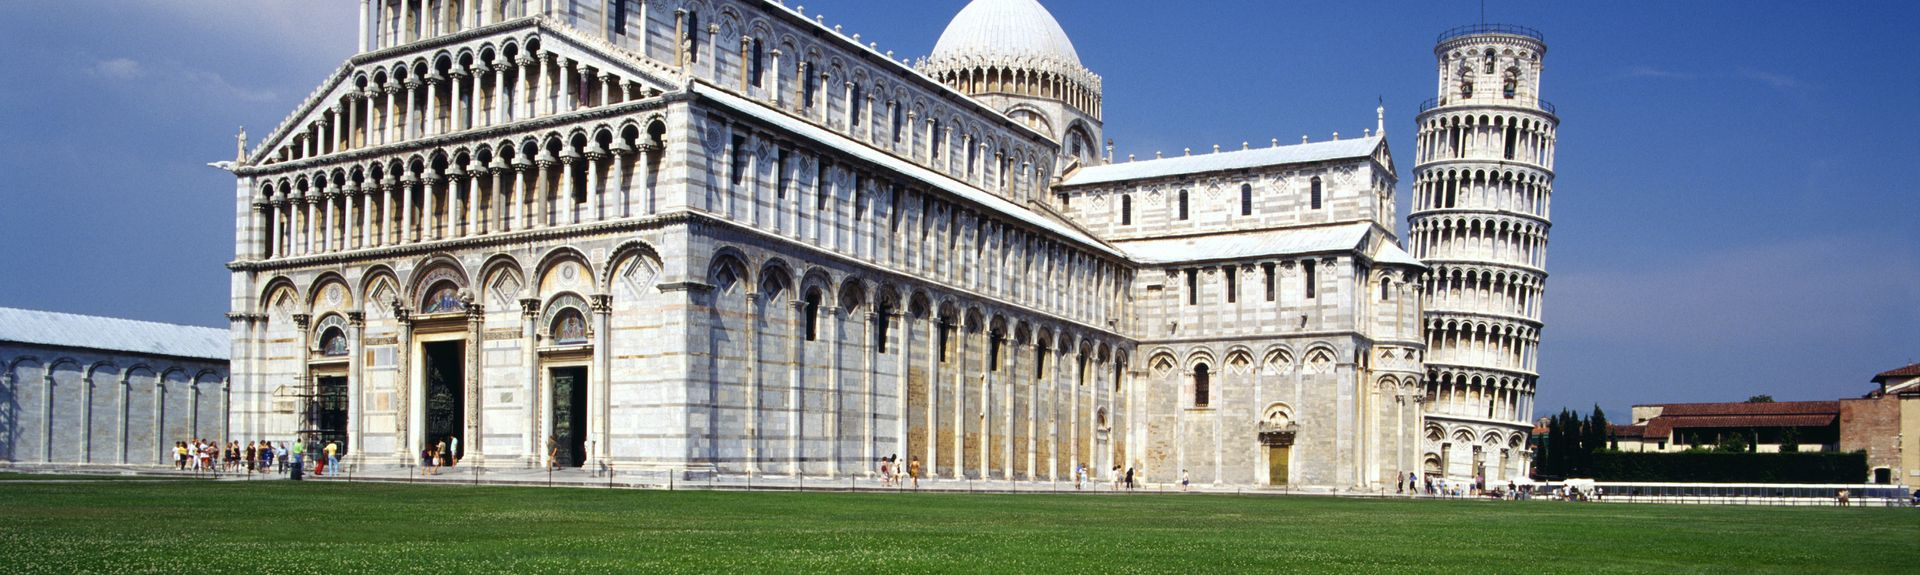 Province of Pisa, Italy